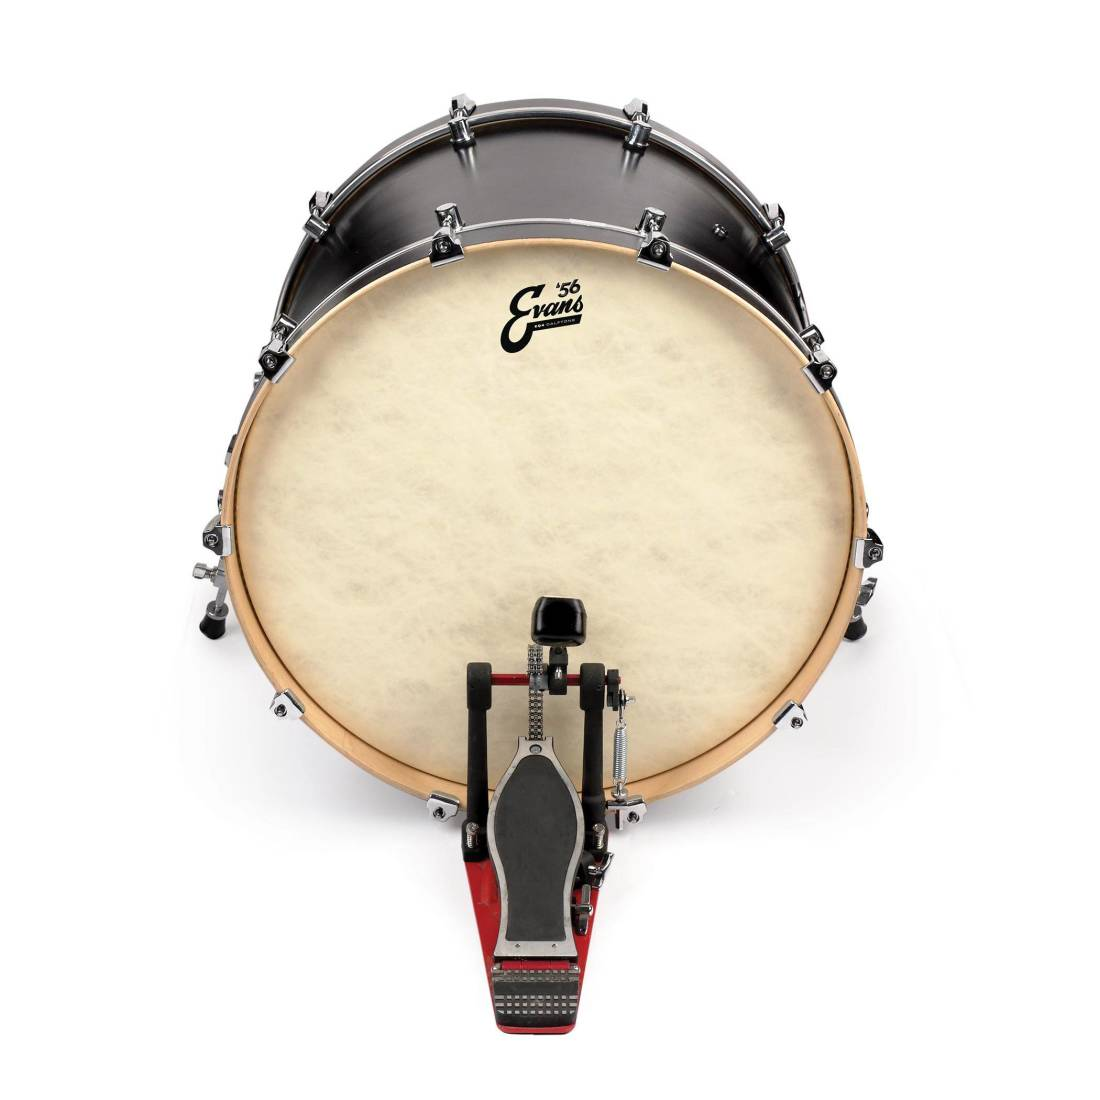 22 Bass Drum Head : evans eq4 calftone bass drum head 22 inch long mcquade musical instruments ~ Hamham.info Haus und Dekorationen